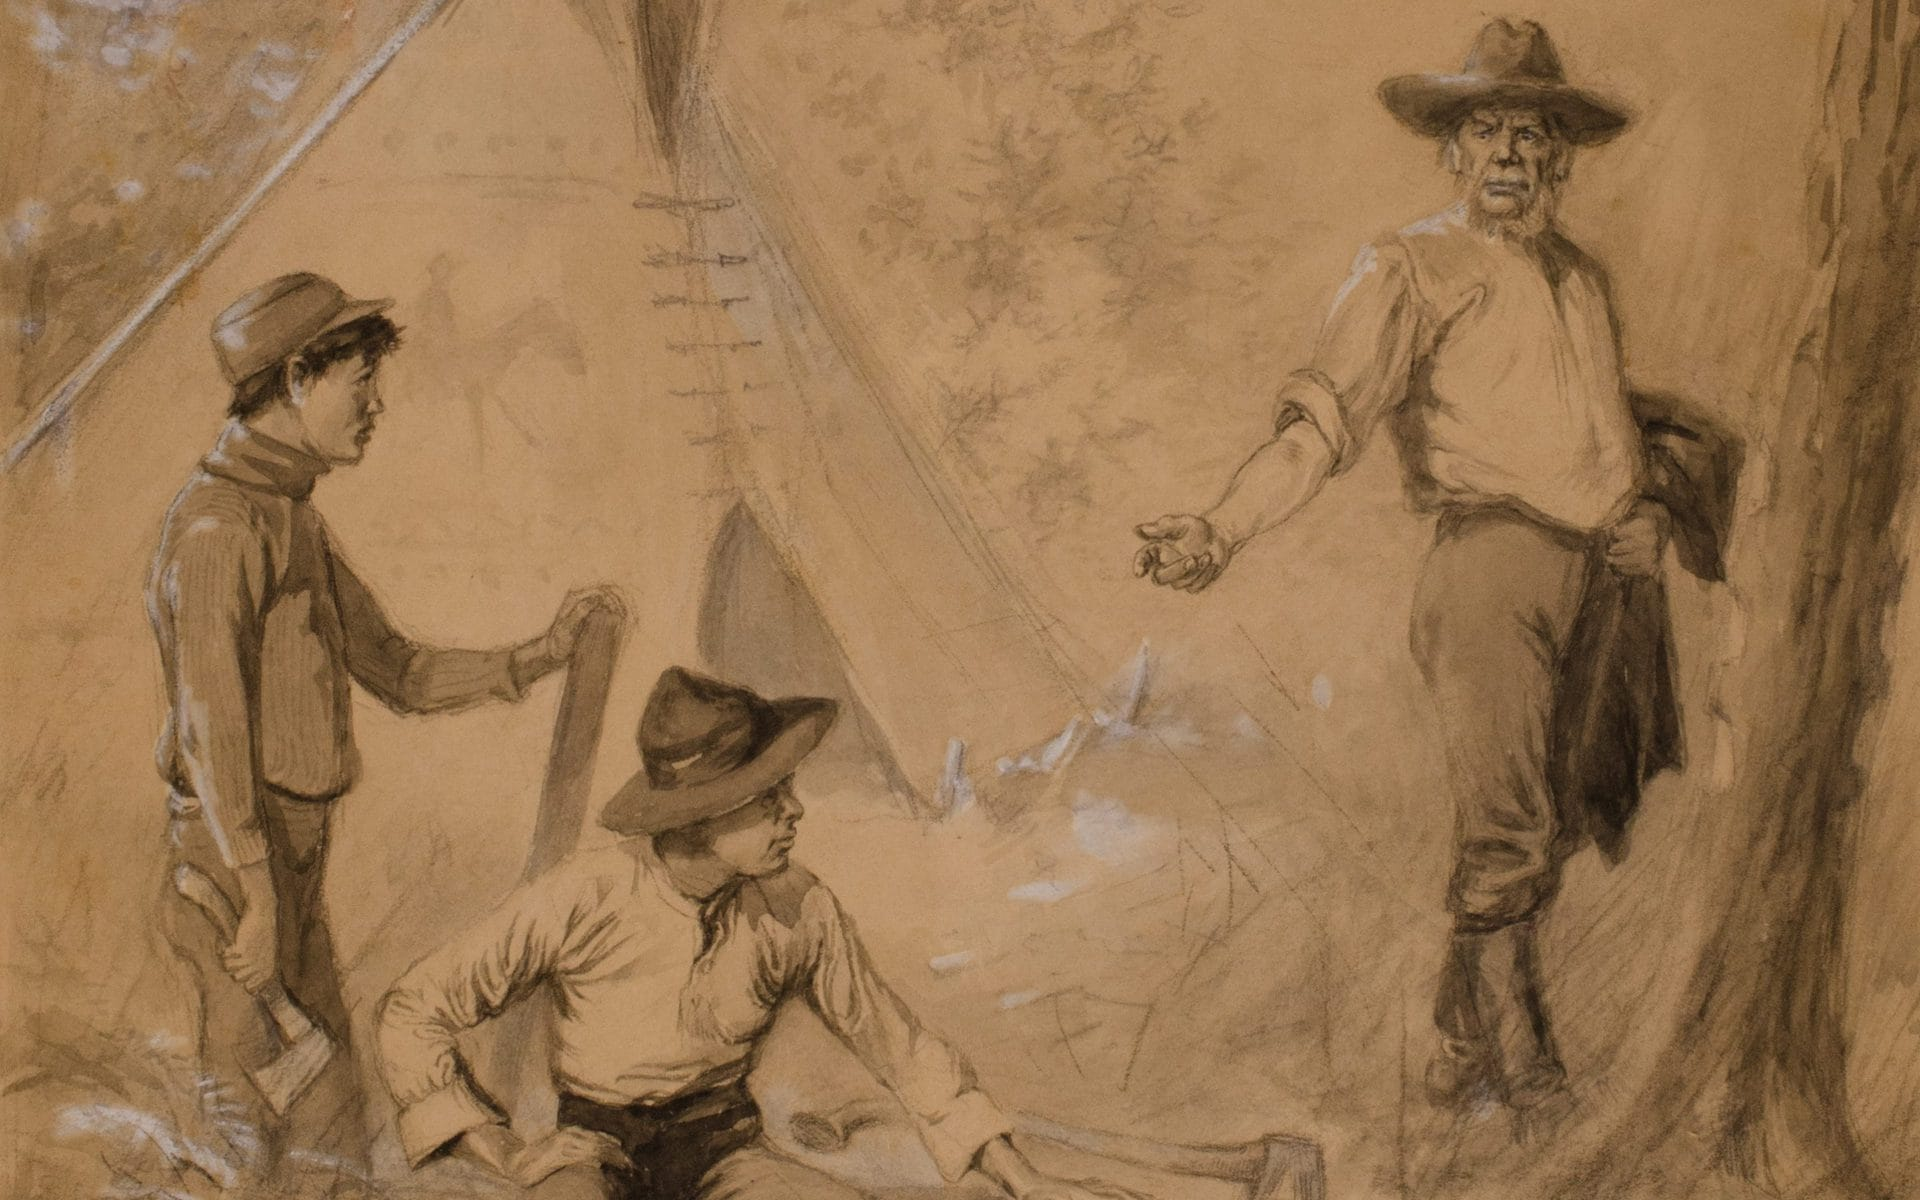 Boy Environmentalist finds Role Models Biography 1870s